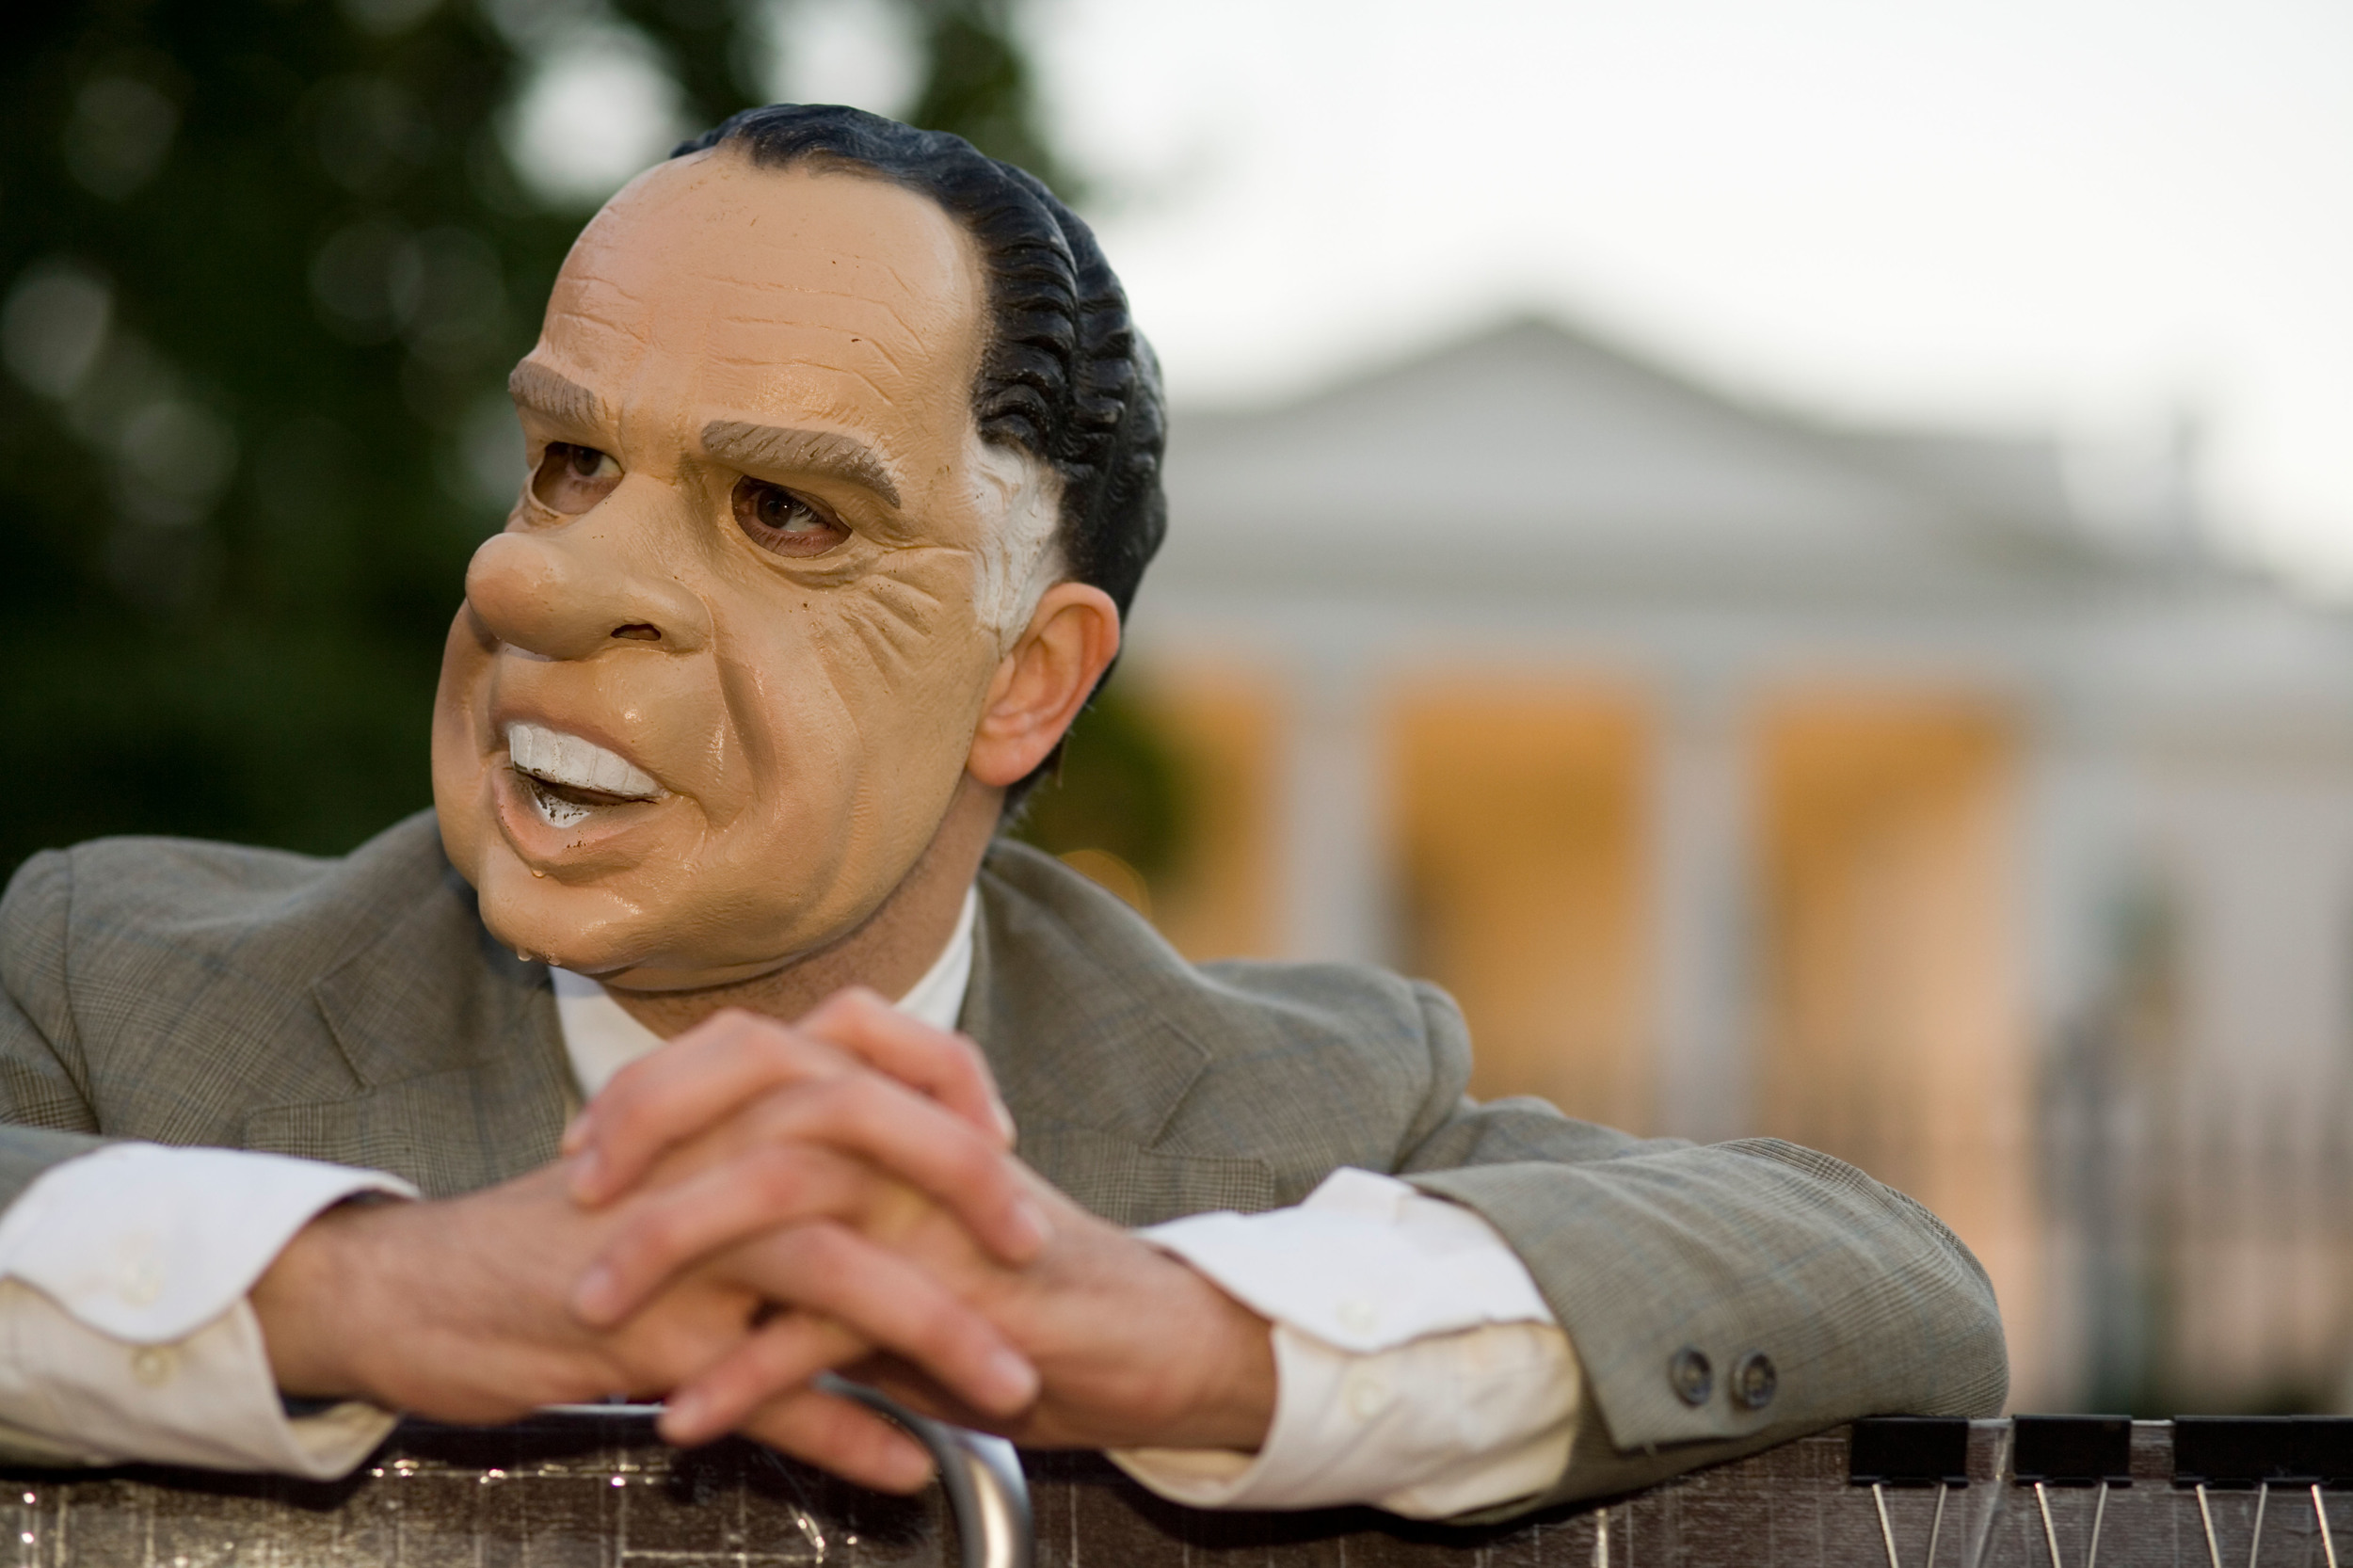 Richard Nixon Mask Pictures to Pin on Pinterest - PinsDaddy